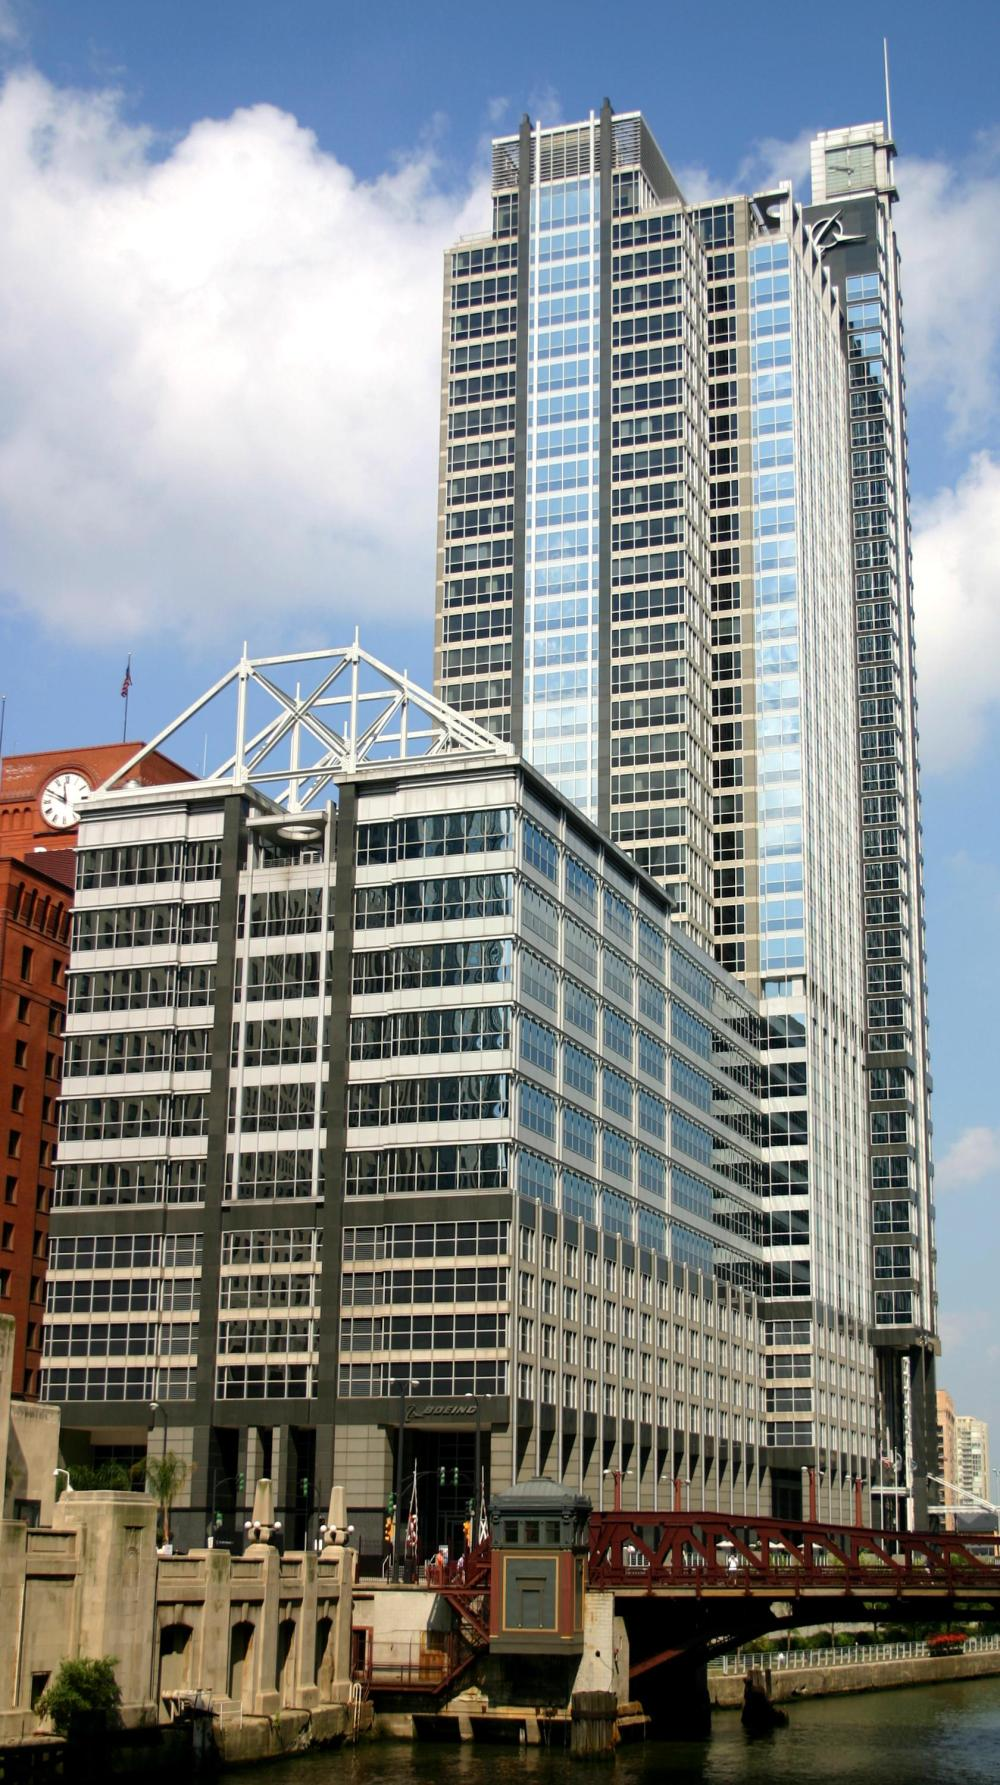 2004-09-14_1680x3000_chicago_boeing_building.jpg